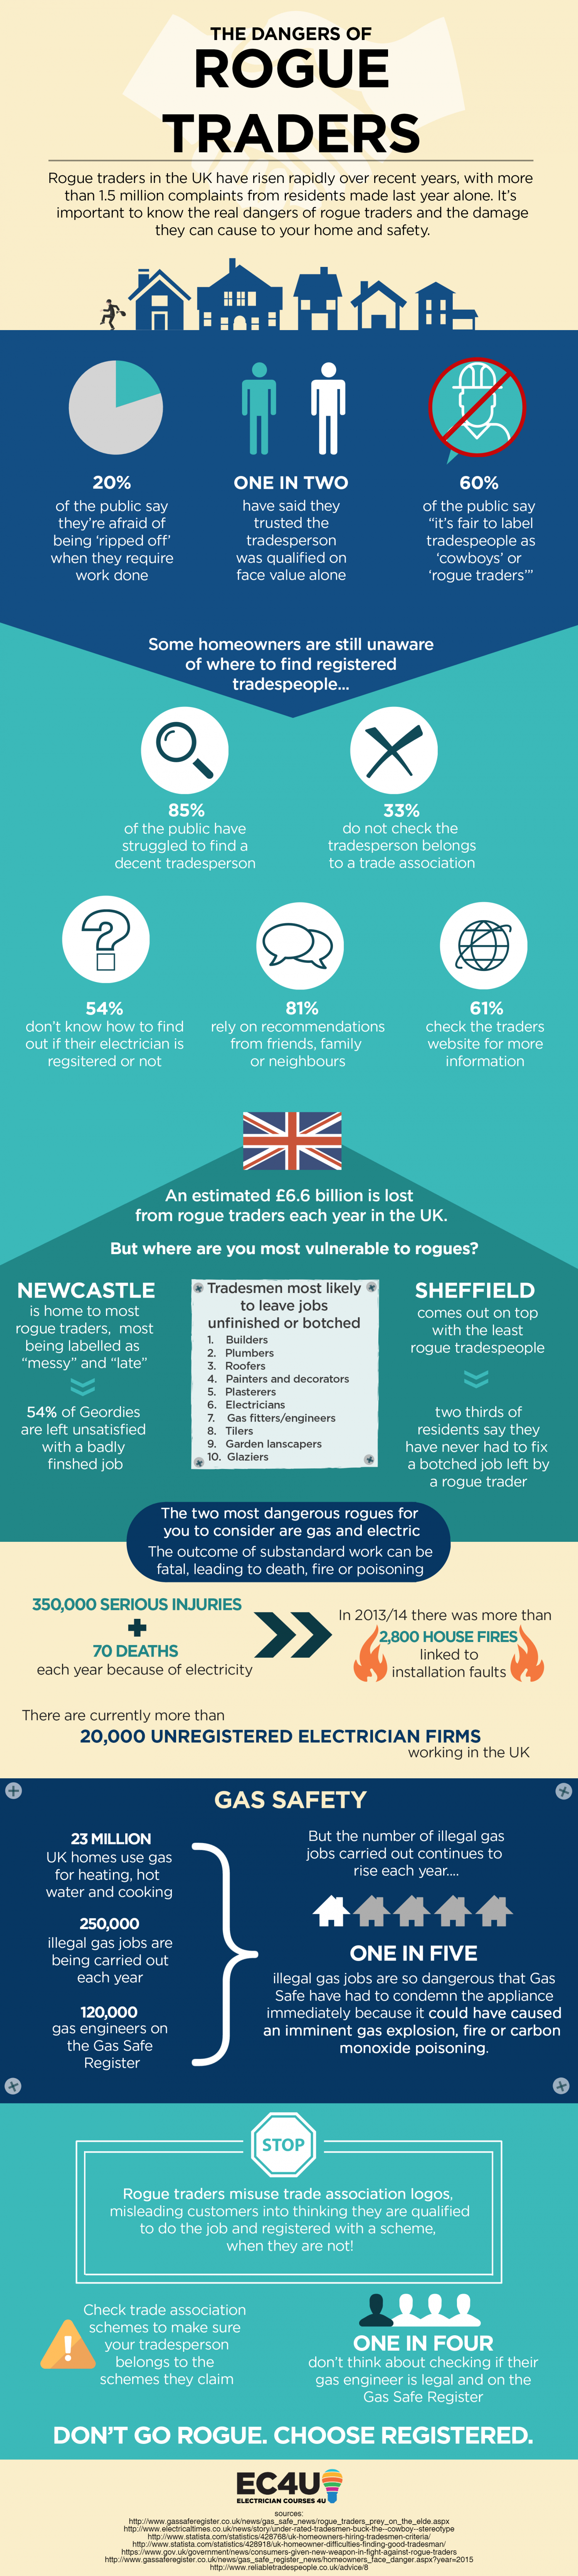 The Dangers of Rogue Traders Infographic